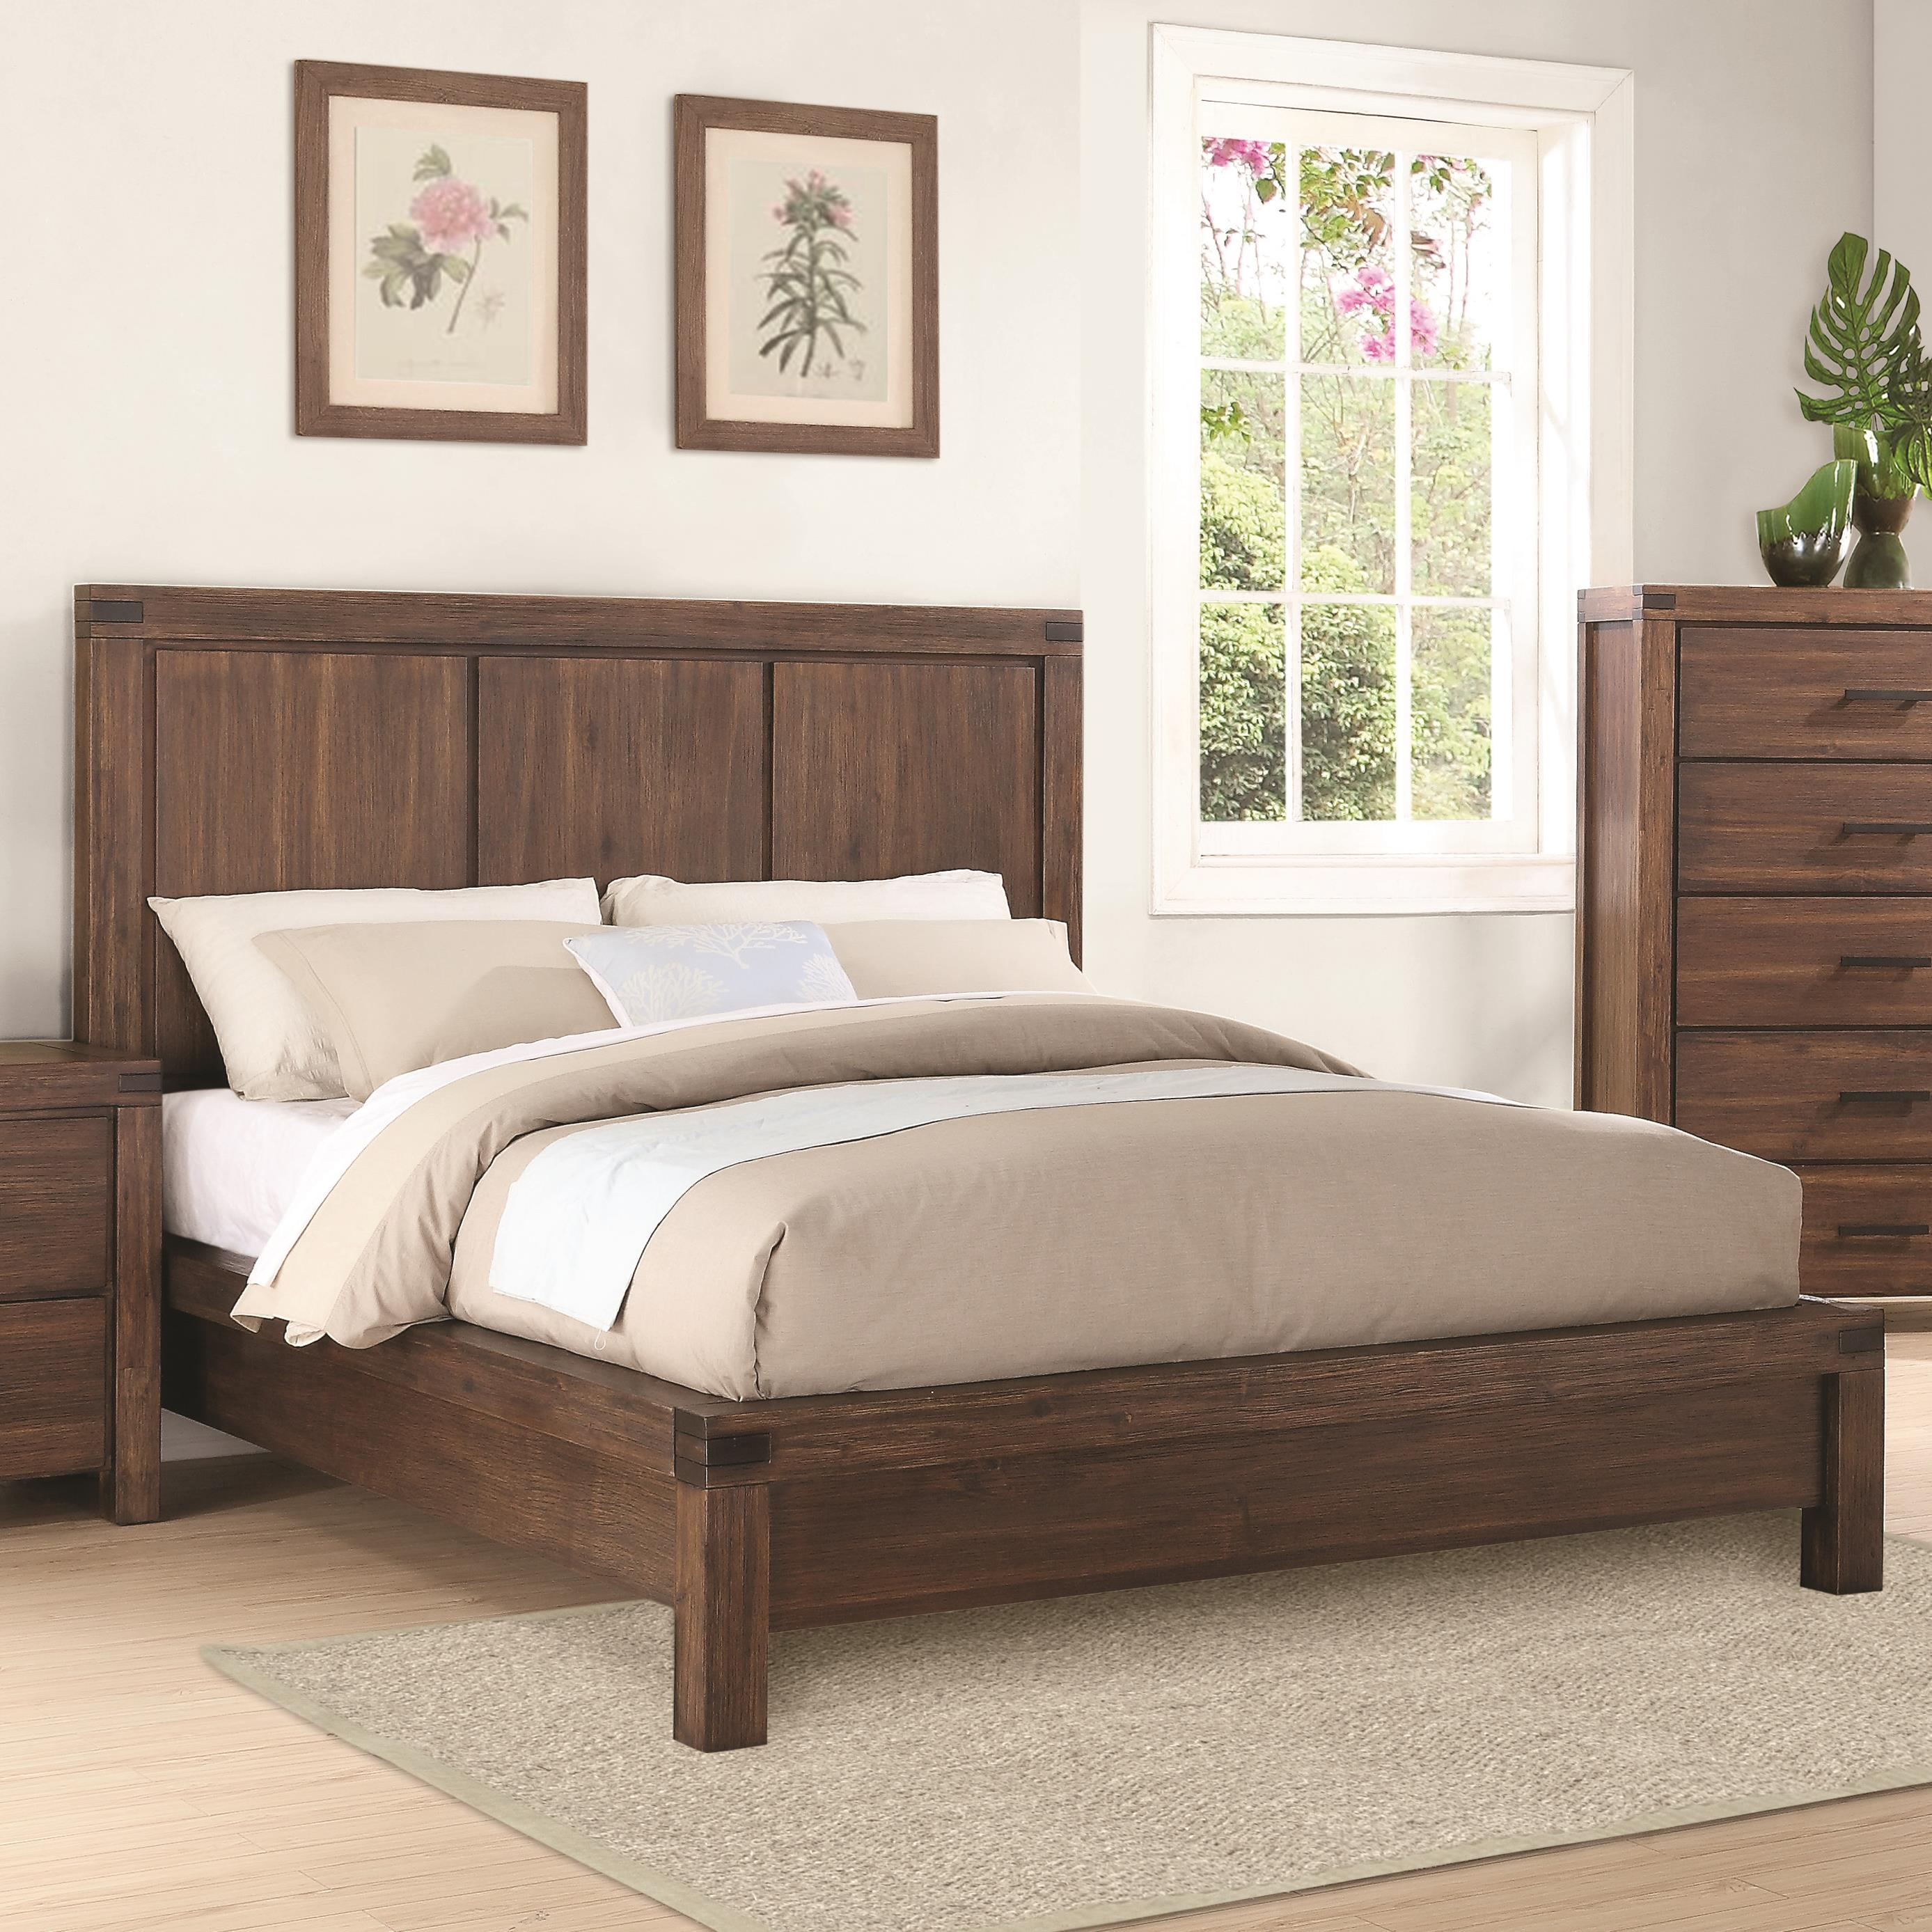 Queen 4 pc set, lancashire (bed, dresser, nightstand, mirror)